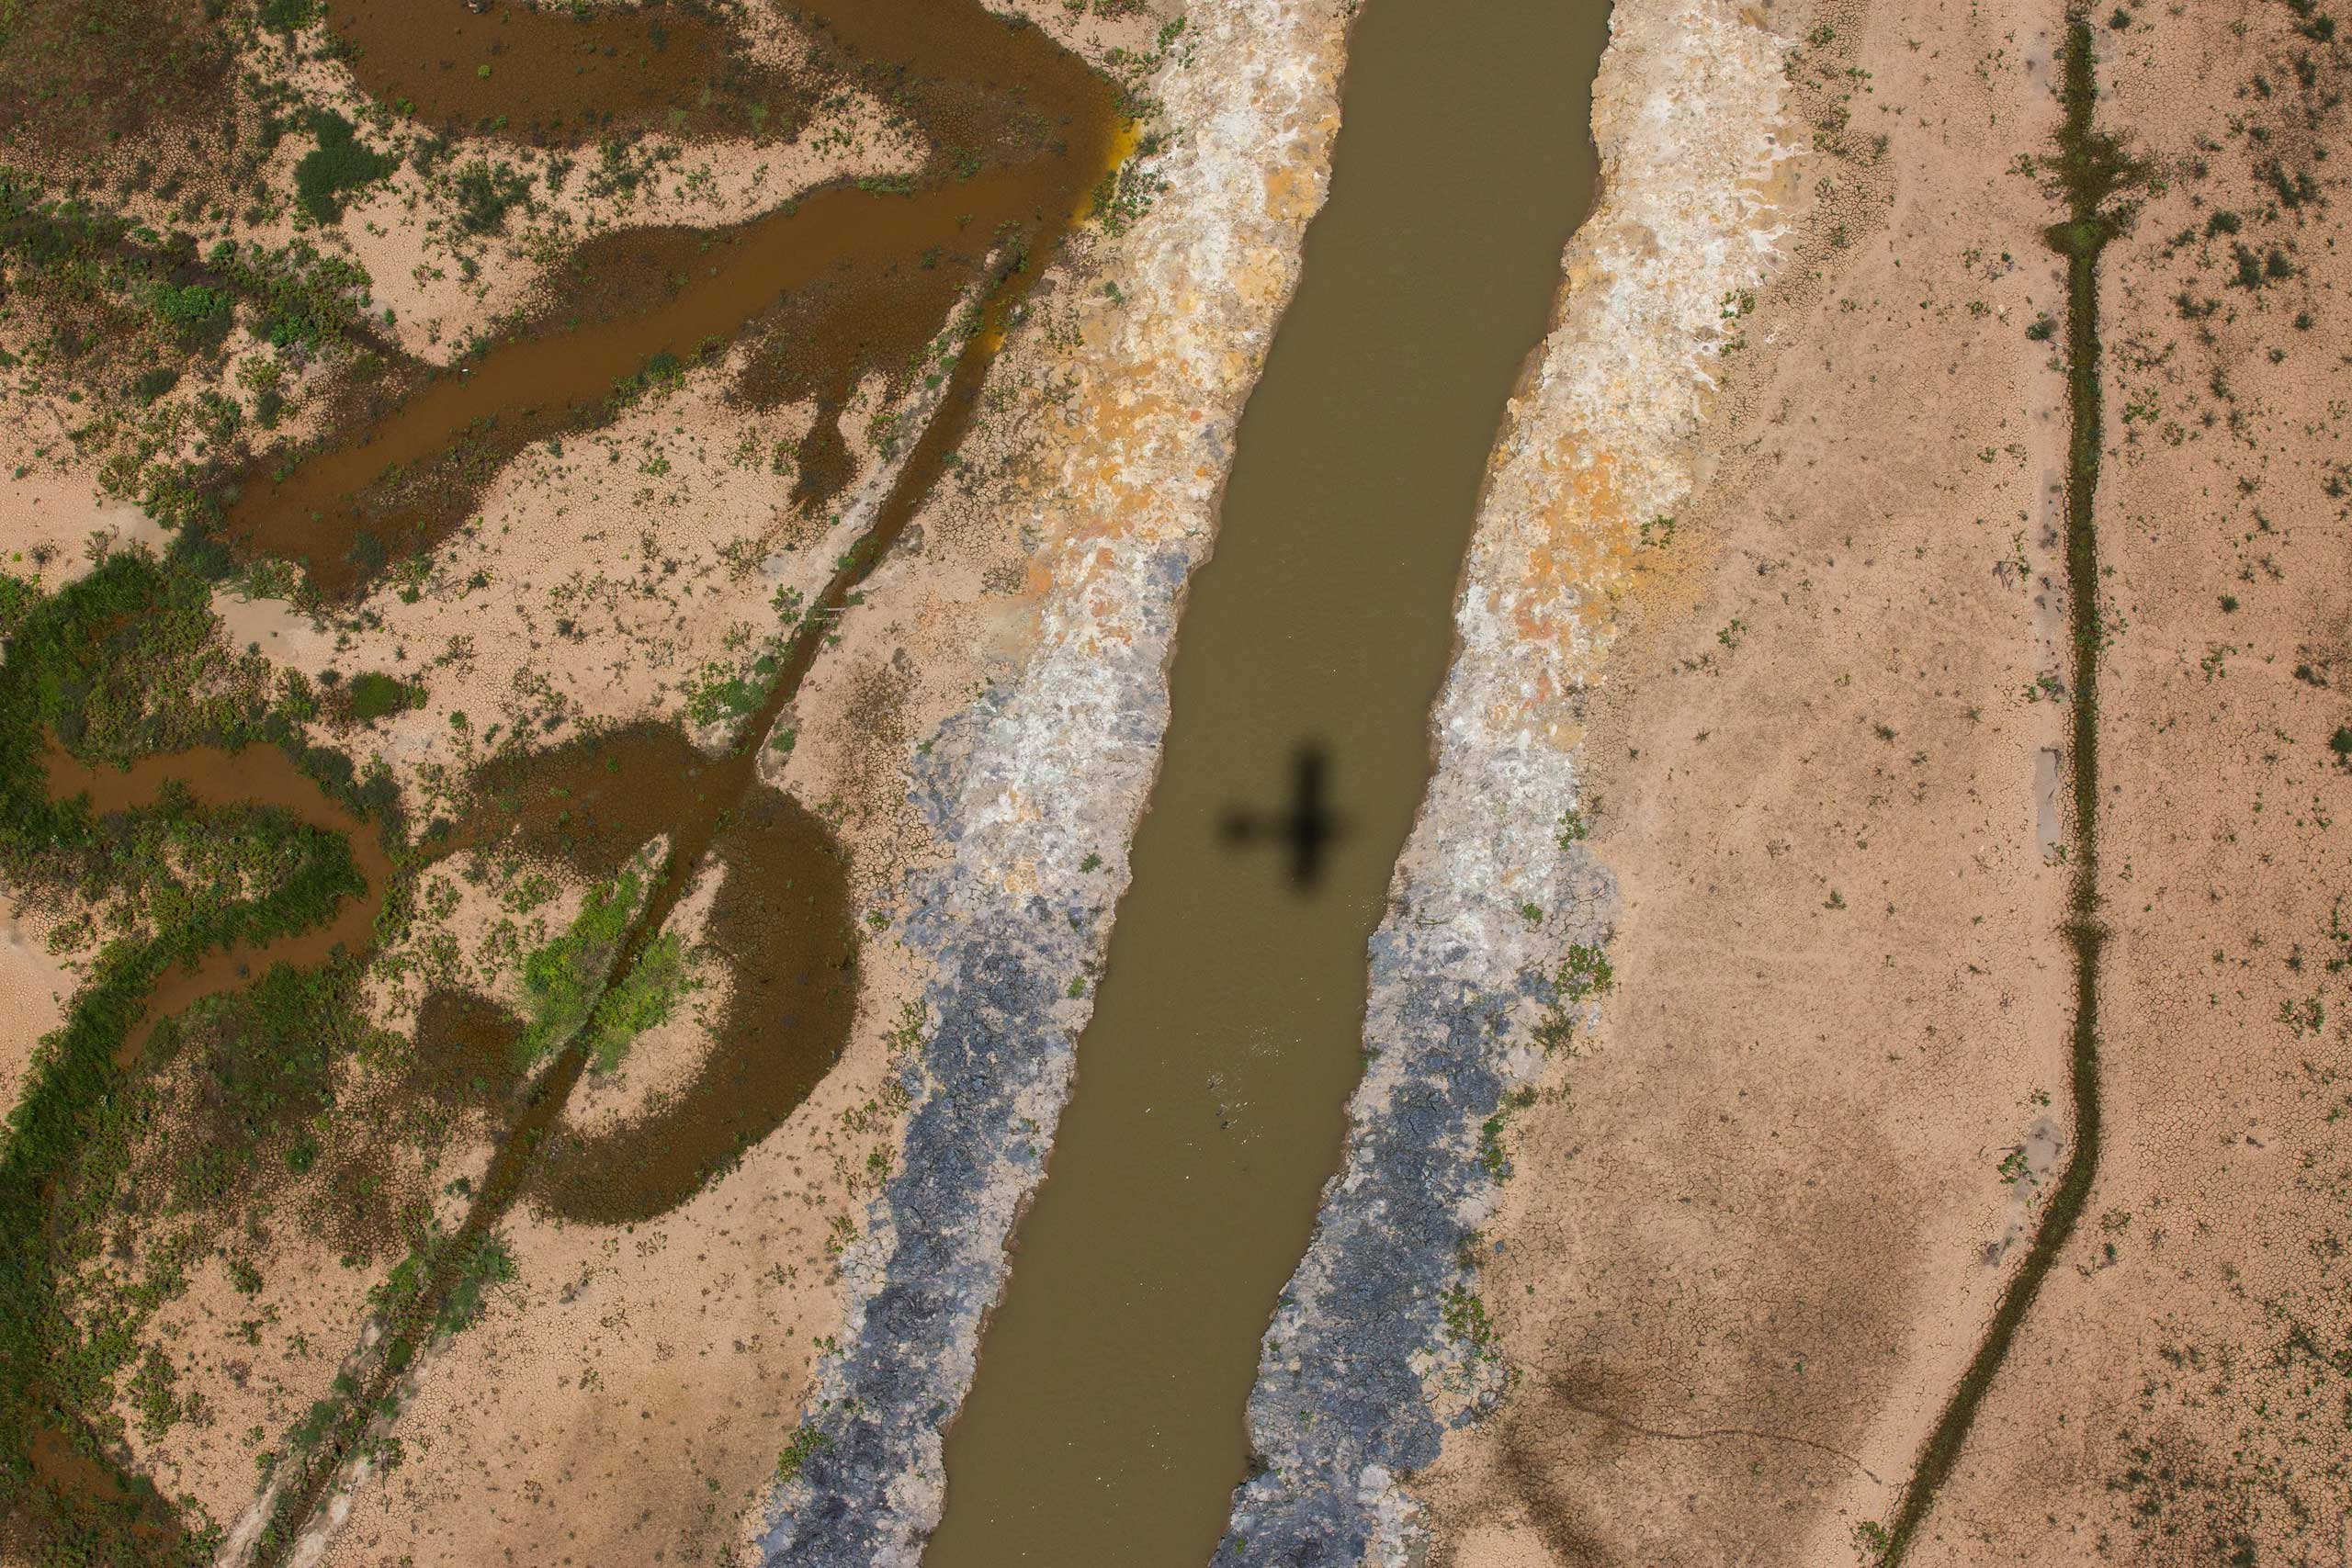 An aerial view of the Atibainha dam, part of the Cantareira reservoir, one of the main water reservoirs that supply the State of Sao Paulo, during a drought in Feb. 23, 2015 in Braganca Paulista.